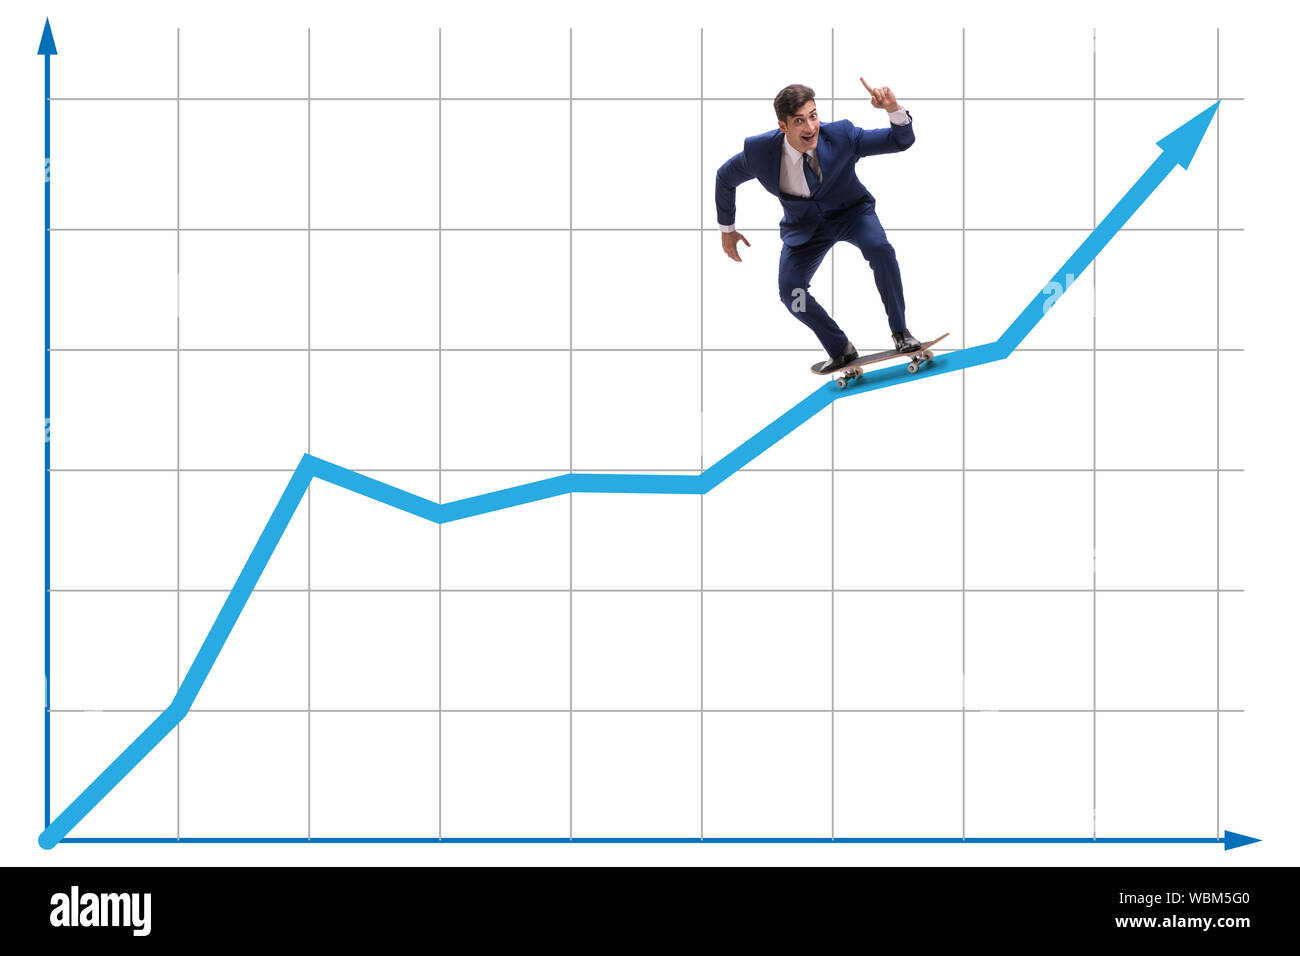 The businessman riding skateboard on financial graph Stock Photo